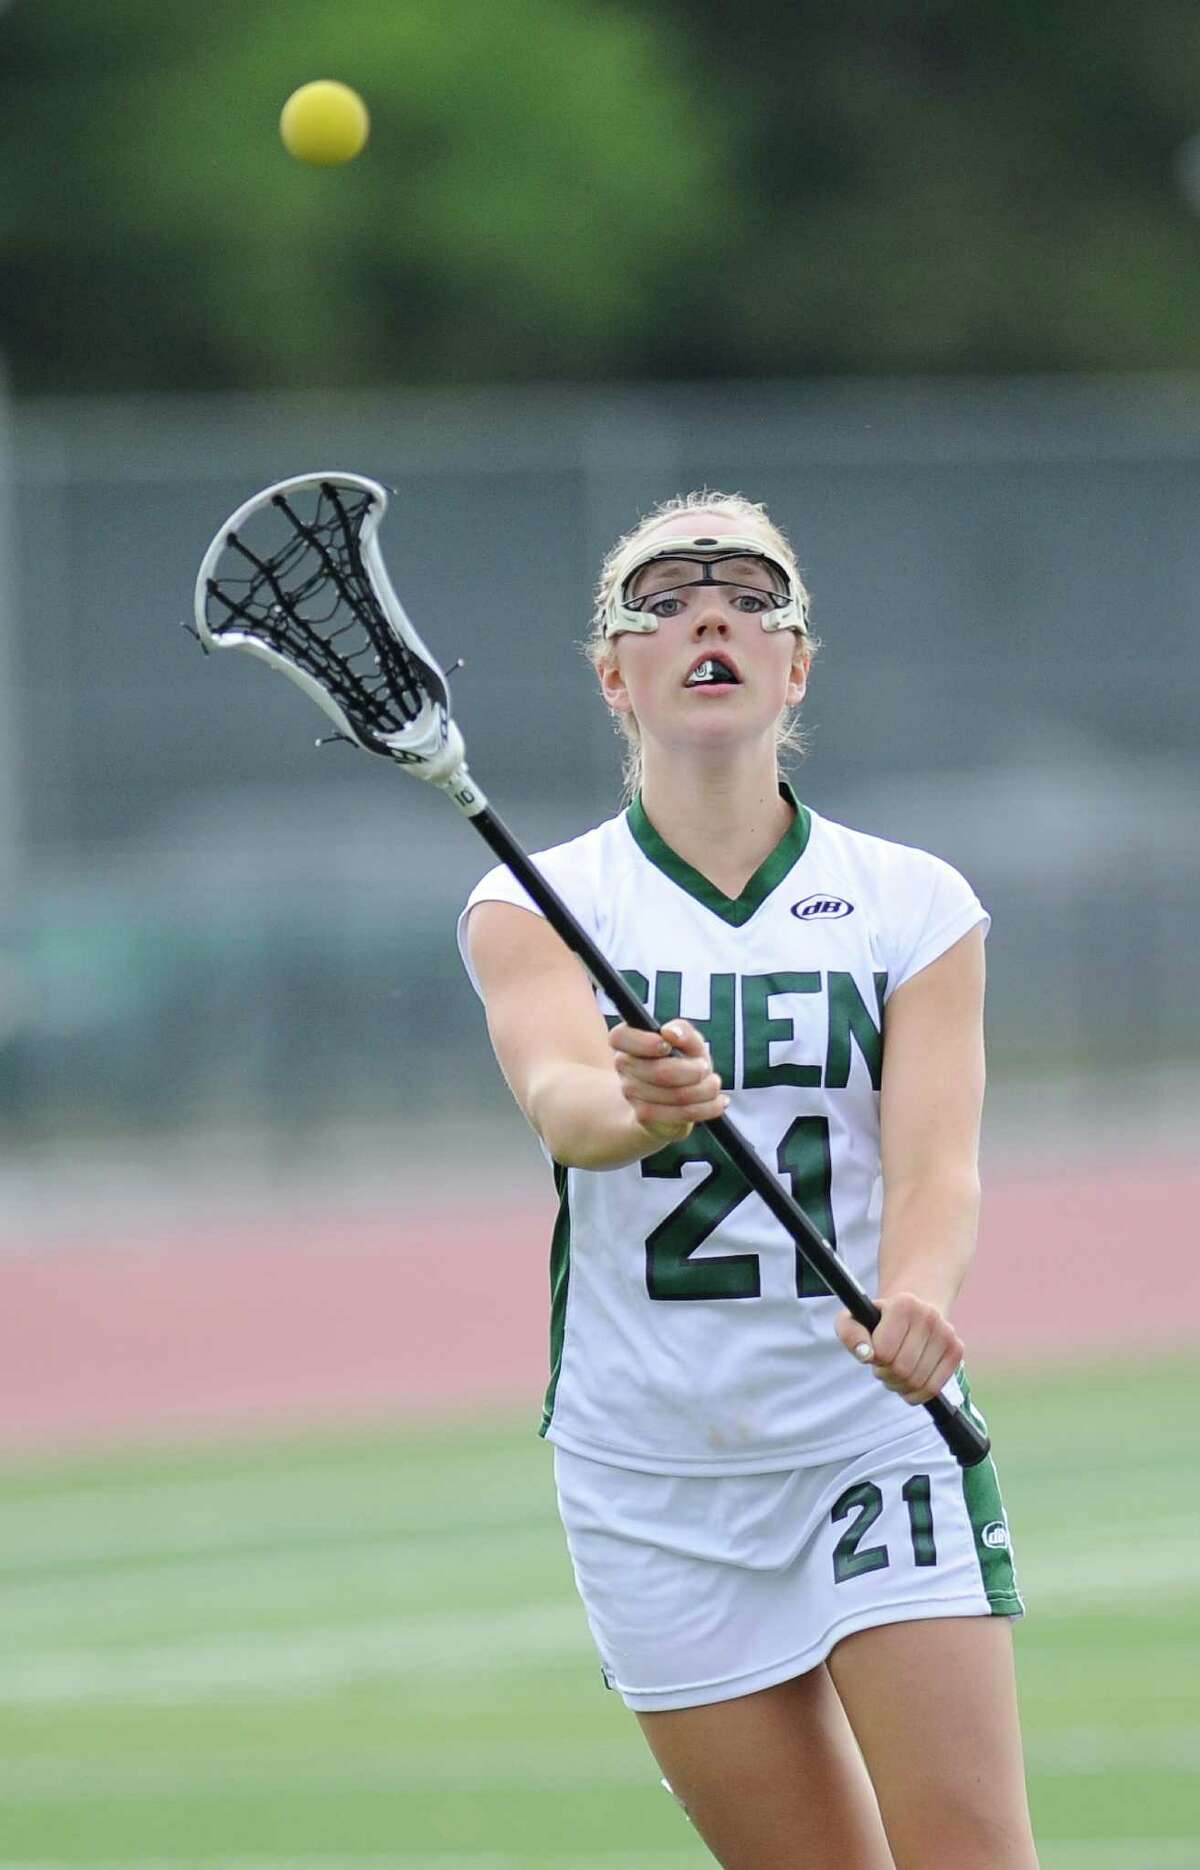 Shenendehowa's Jordy Marr (21) shoots against Bethlehem during their Section II Class A girls' semifinal lacrosse at game in Clifton Park, N.Y., Thursday, May 21, 2015. (Hans Pennink / Special to the Times Union) ORG XMIT: HP111